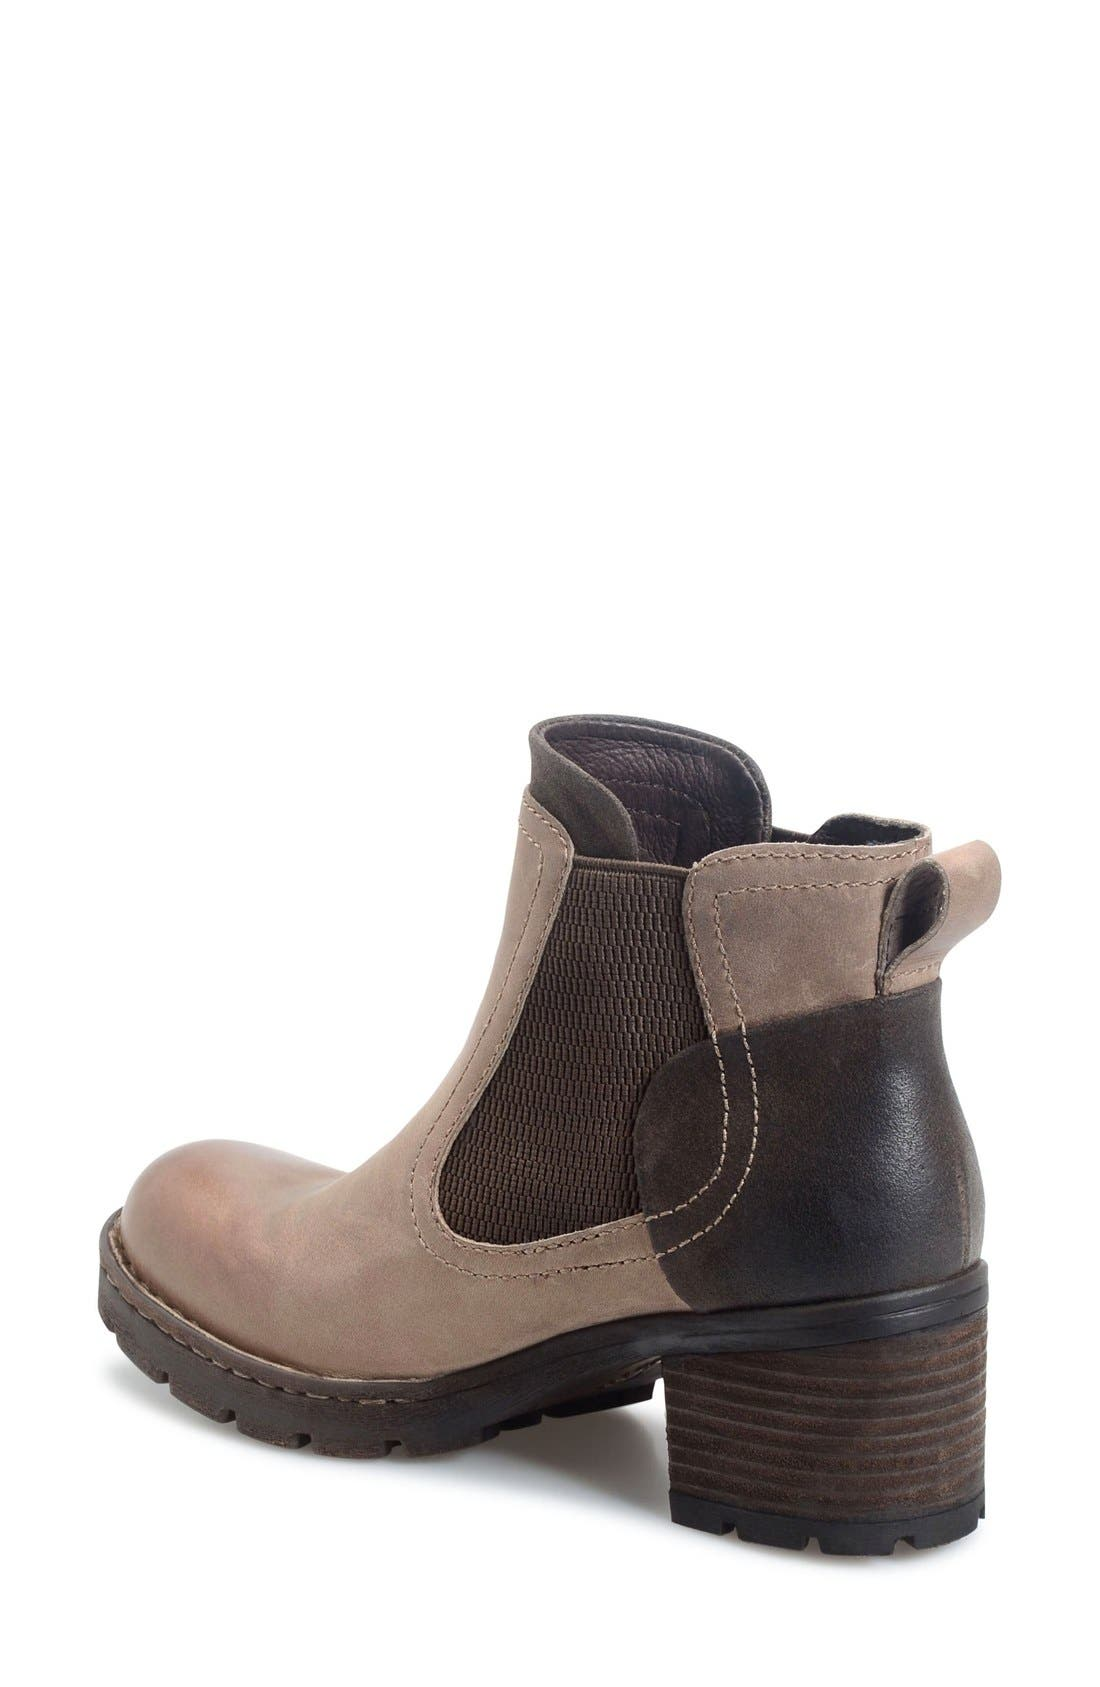 Madyson Chelsea Boot,                             Alternate thumbnail 2, color,                             Mouse Leather